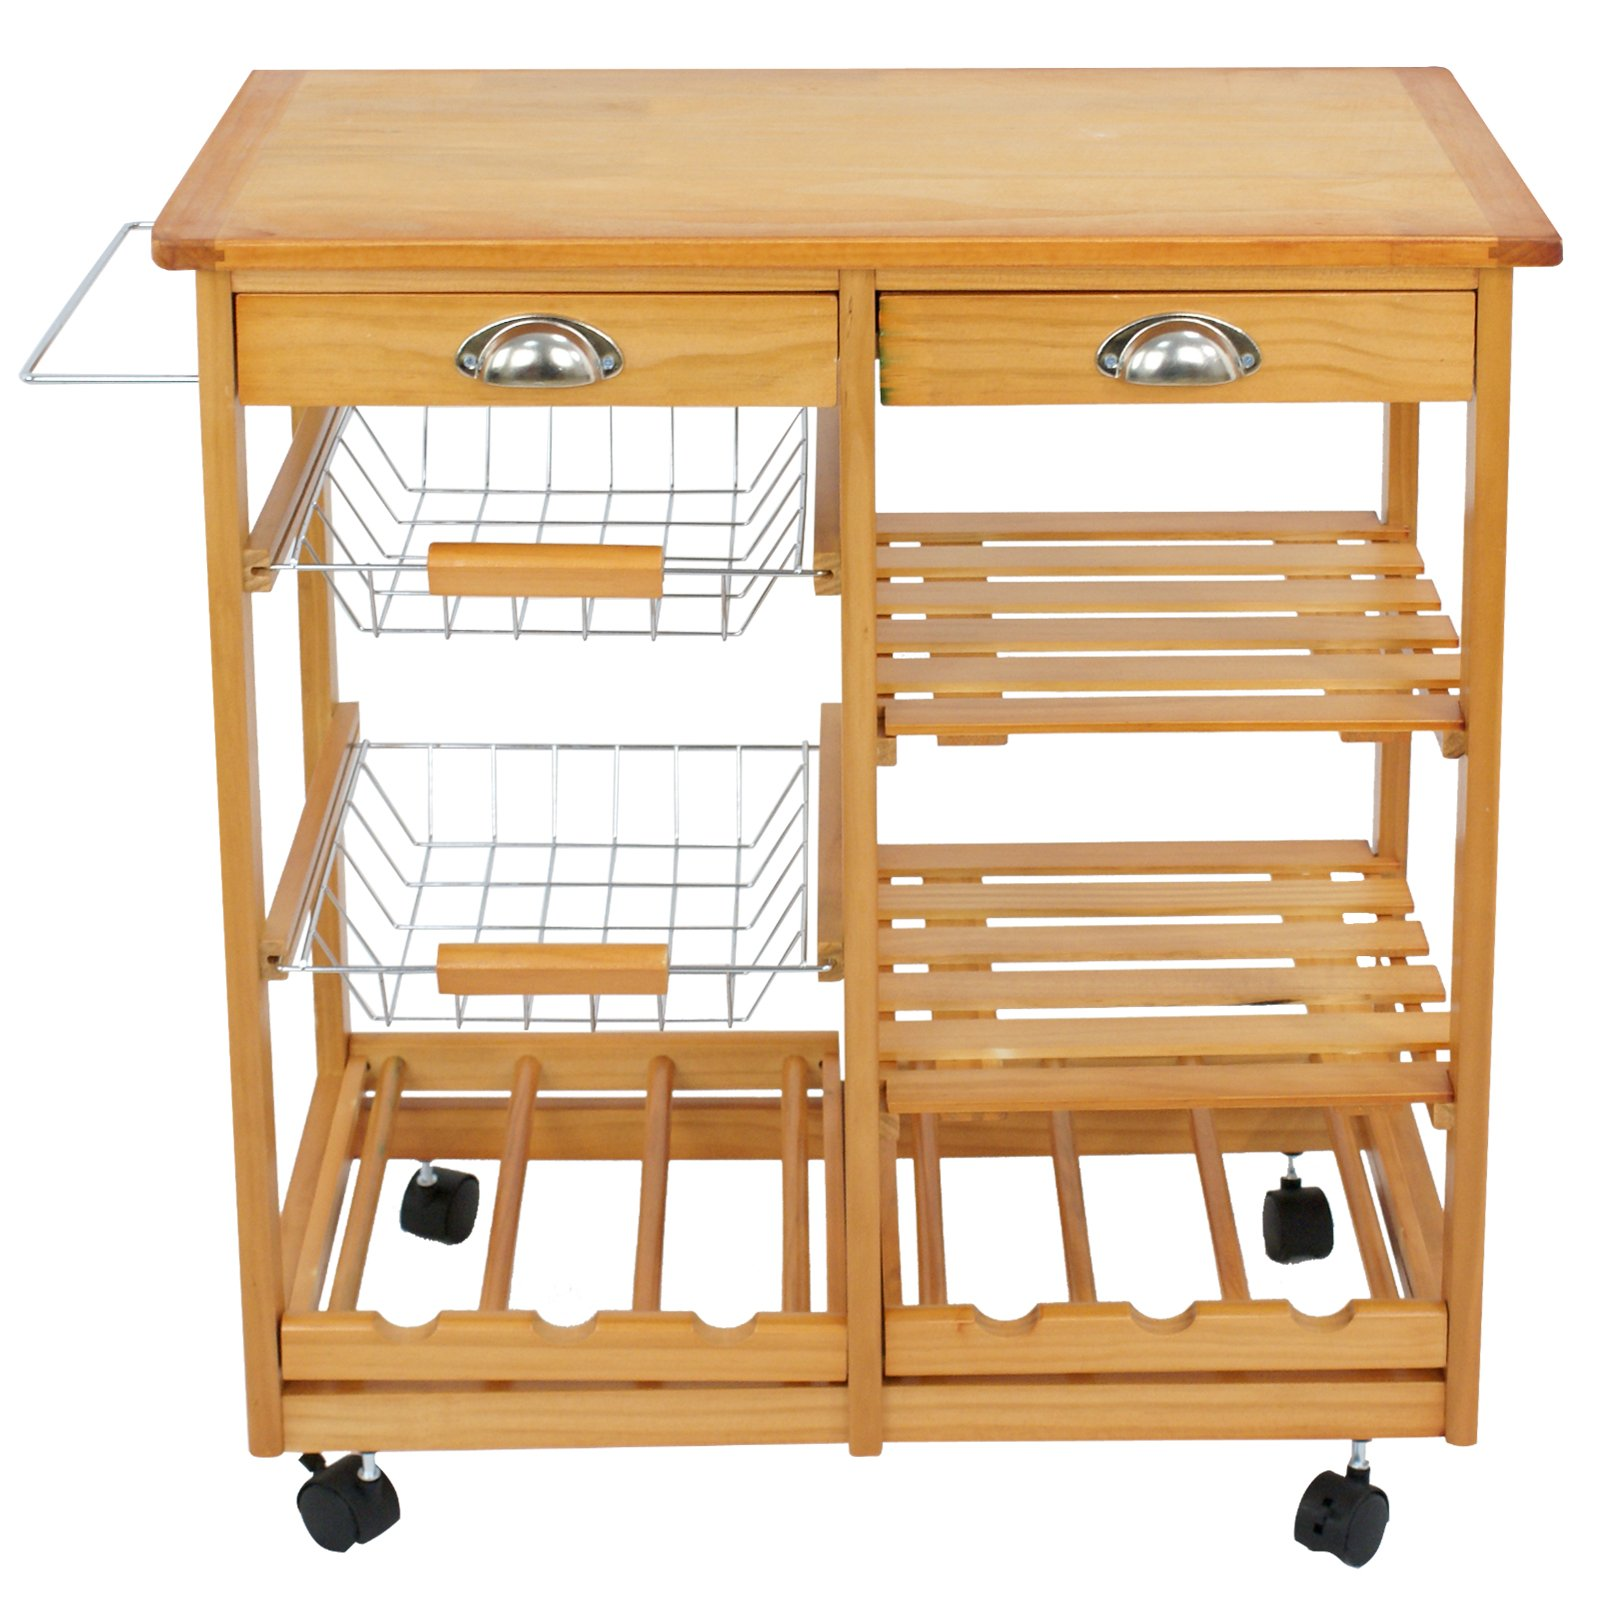 SUPER DEAL Multi-Purpose Wood Rolling Kitchen Island Trolley w/Drawer Shelves Basket by SUPER DEAL (Image #4)